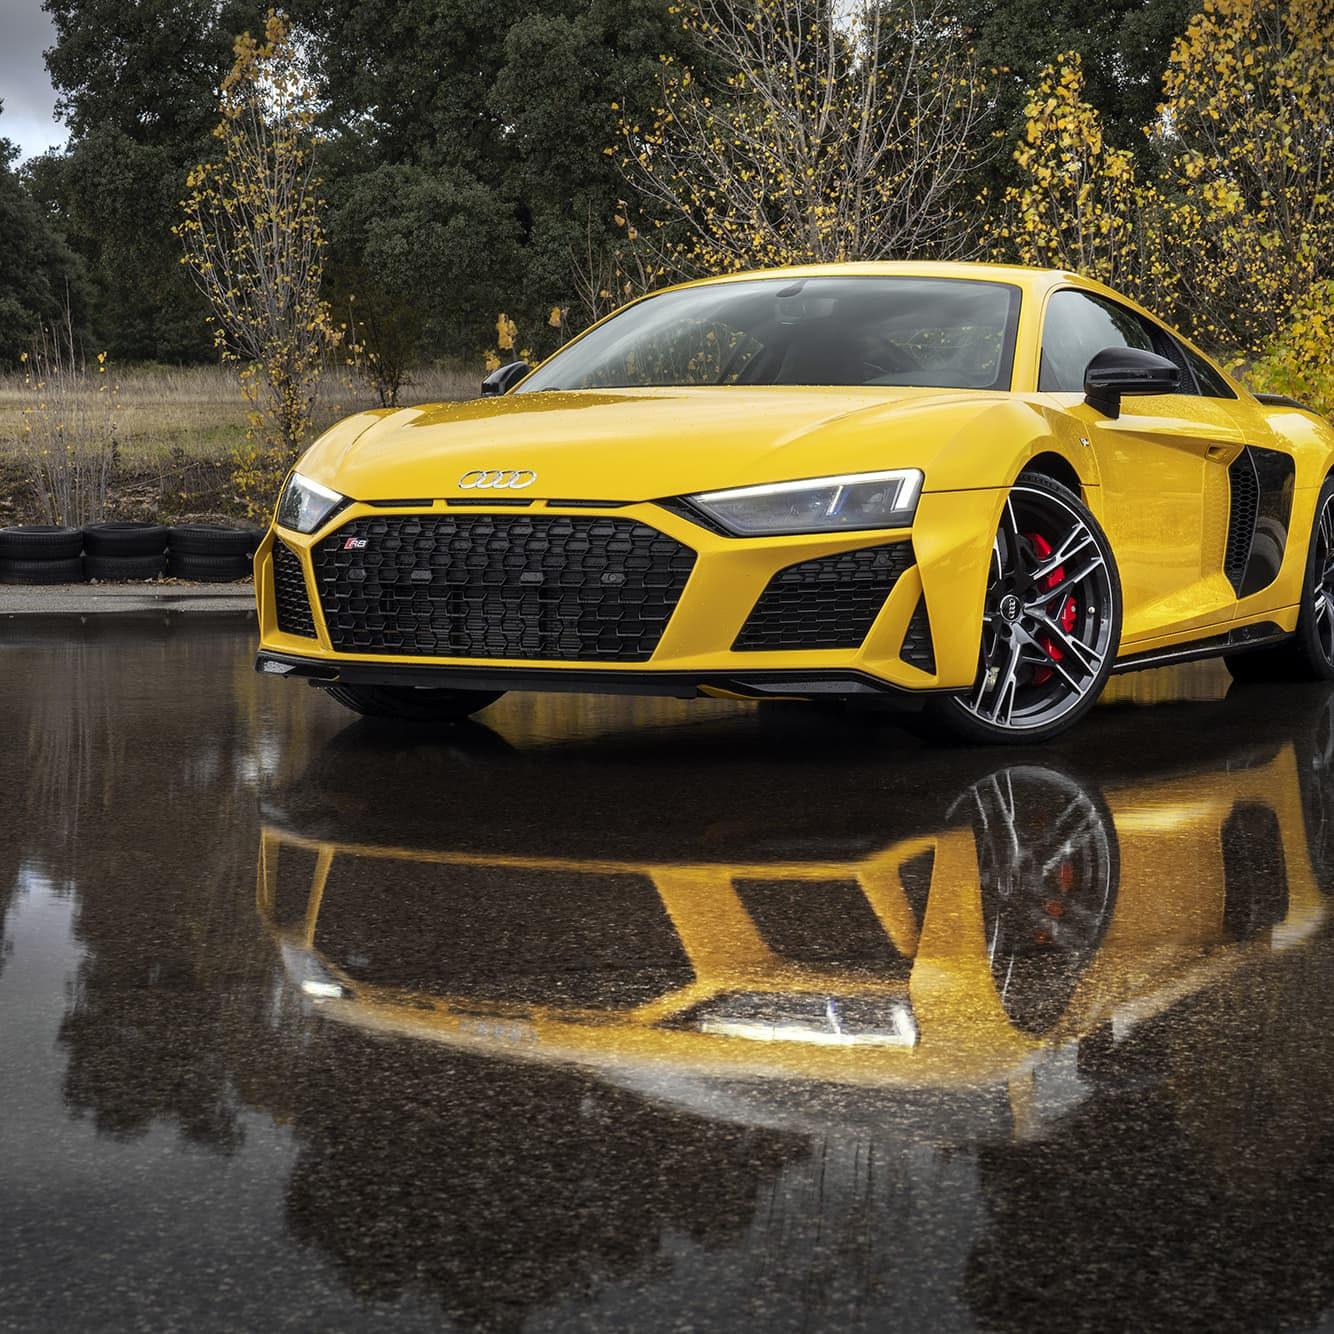 When it comes to the exterior, not a lot has changed since the previous generation of the R8. The inlets above the slightly wider grill, however, are new.